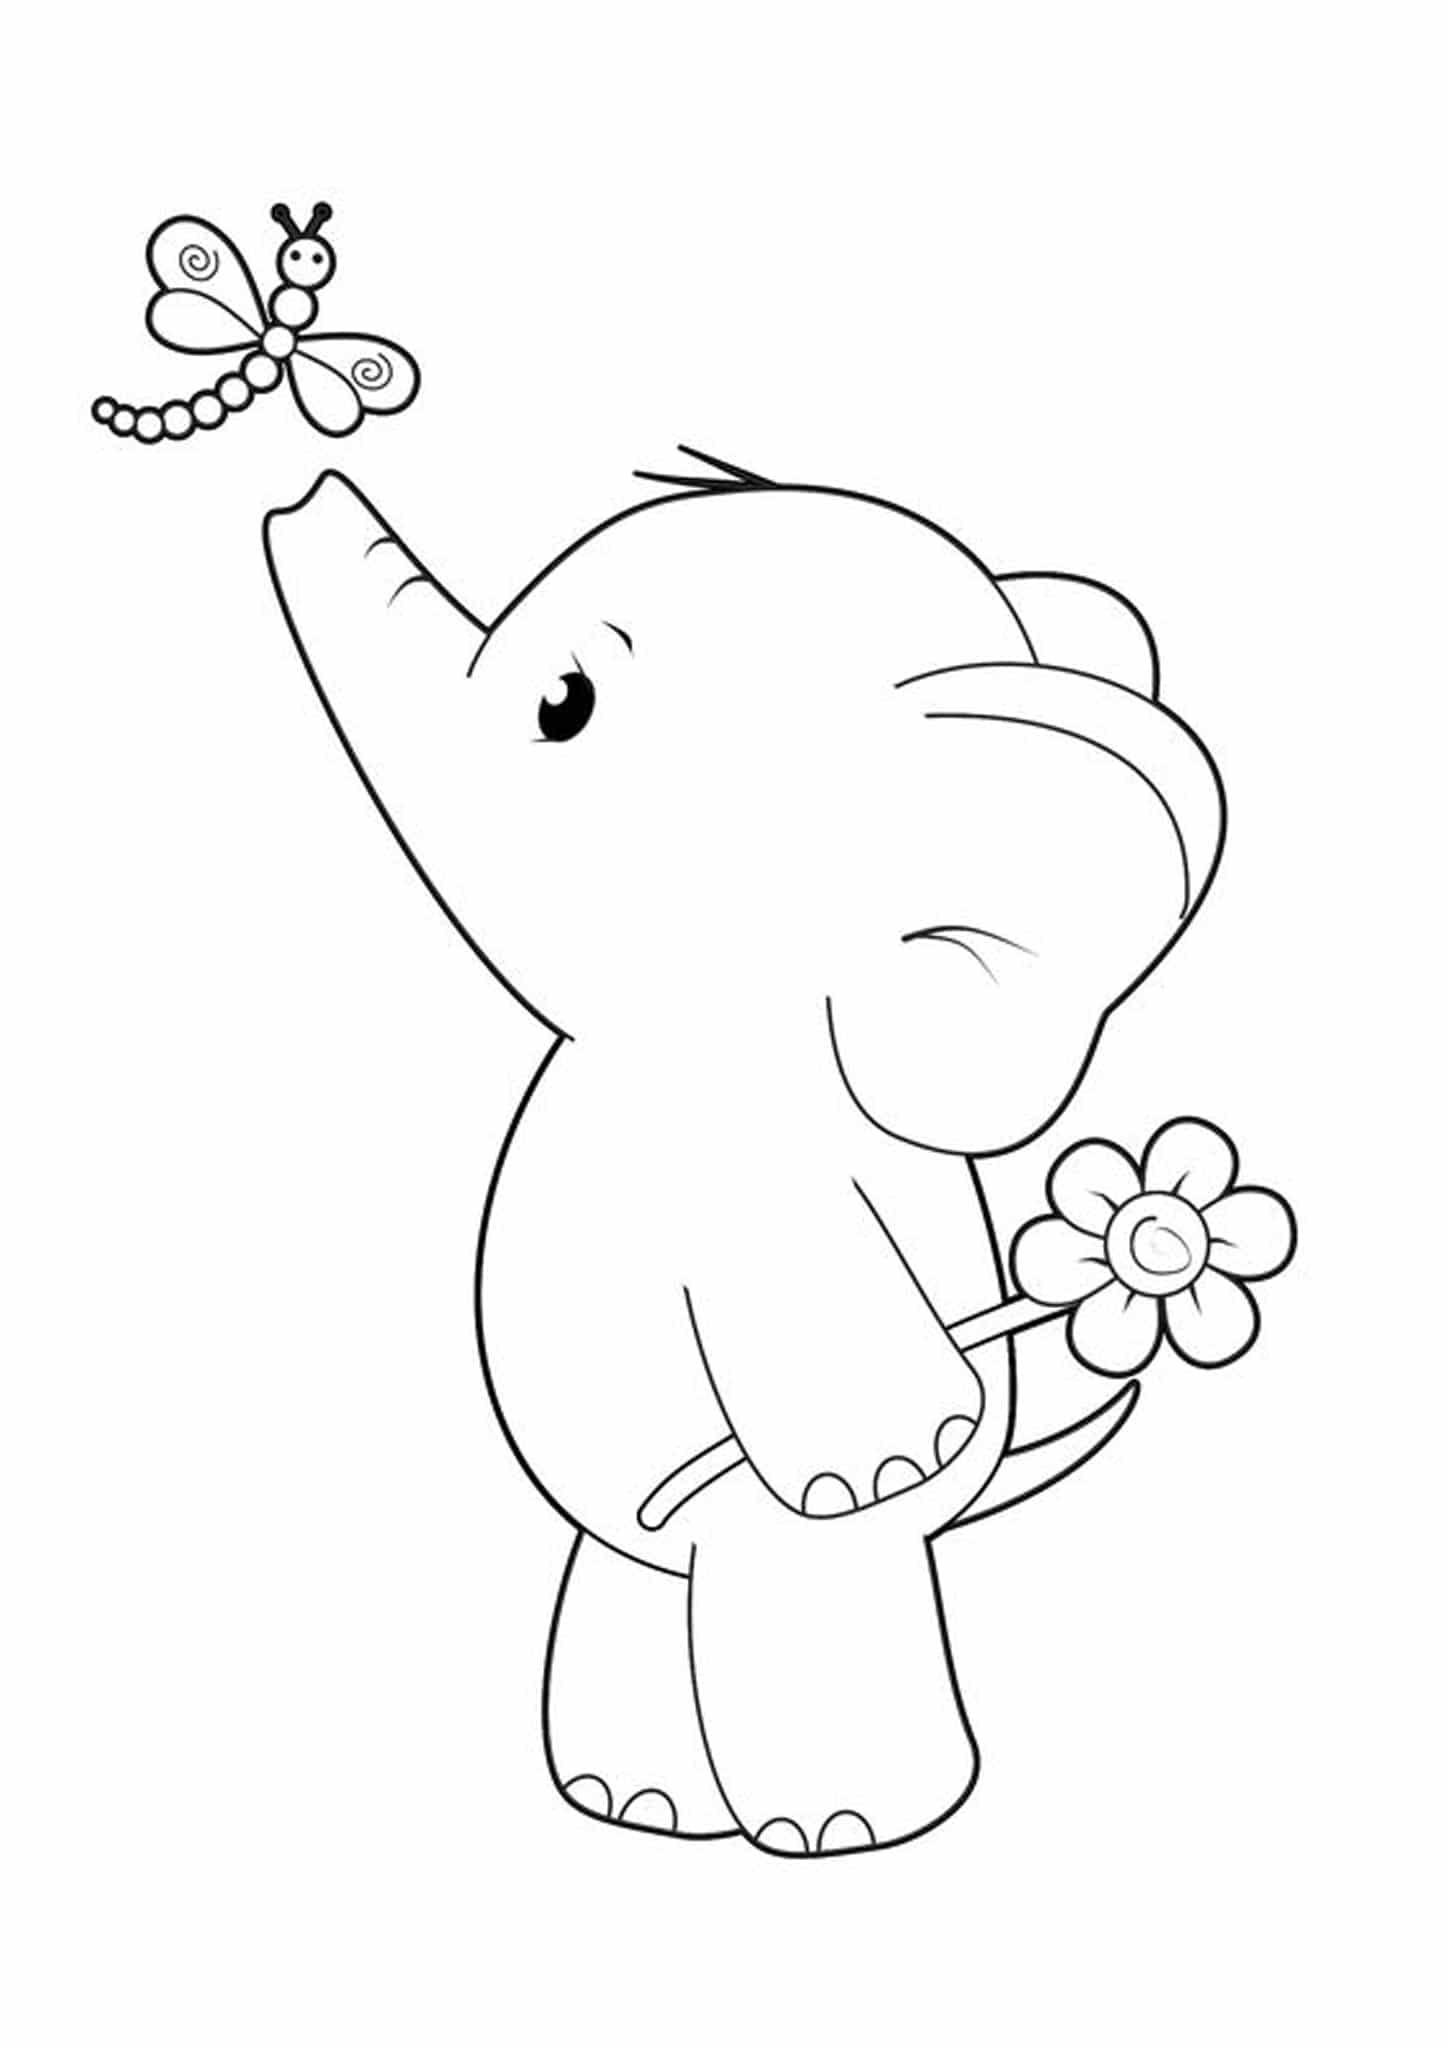 simple elephant coloring page geometric elephant coloring pages at getcoloringscom simple elephant page coloring